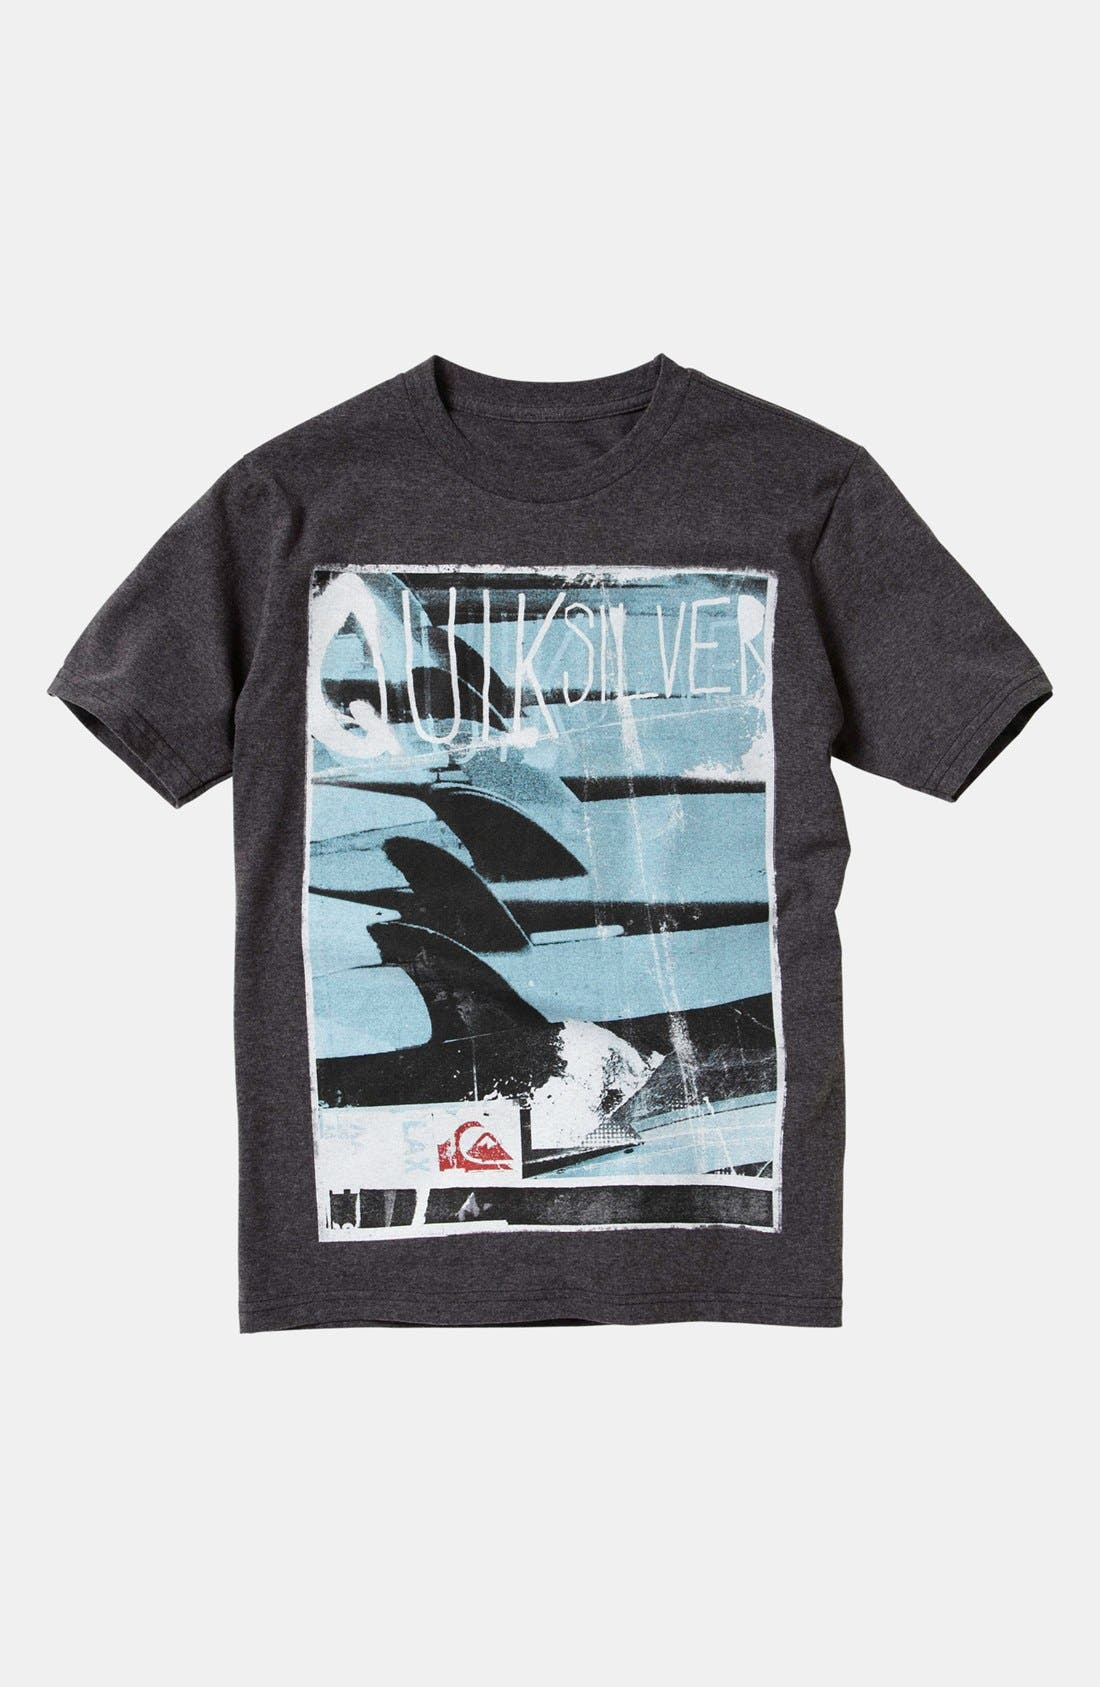 Alternate Image 1 Selected - Quiksilver 'Troops' T-Shirt (Big Boys)